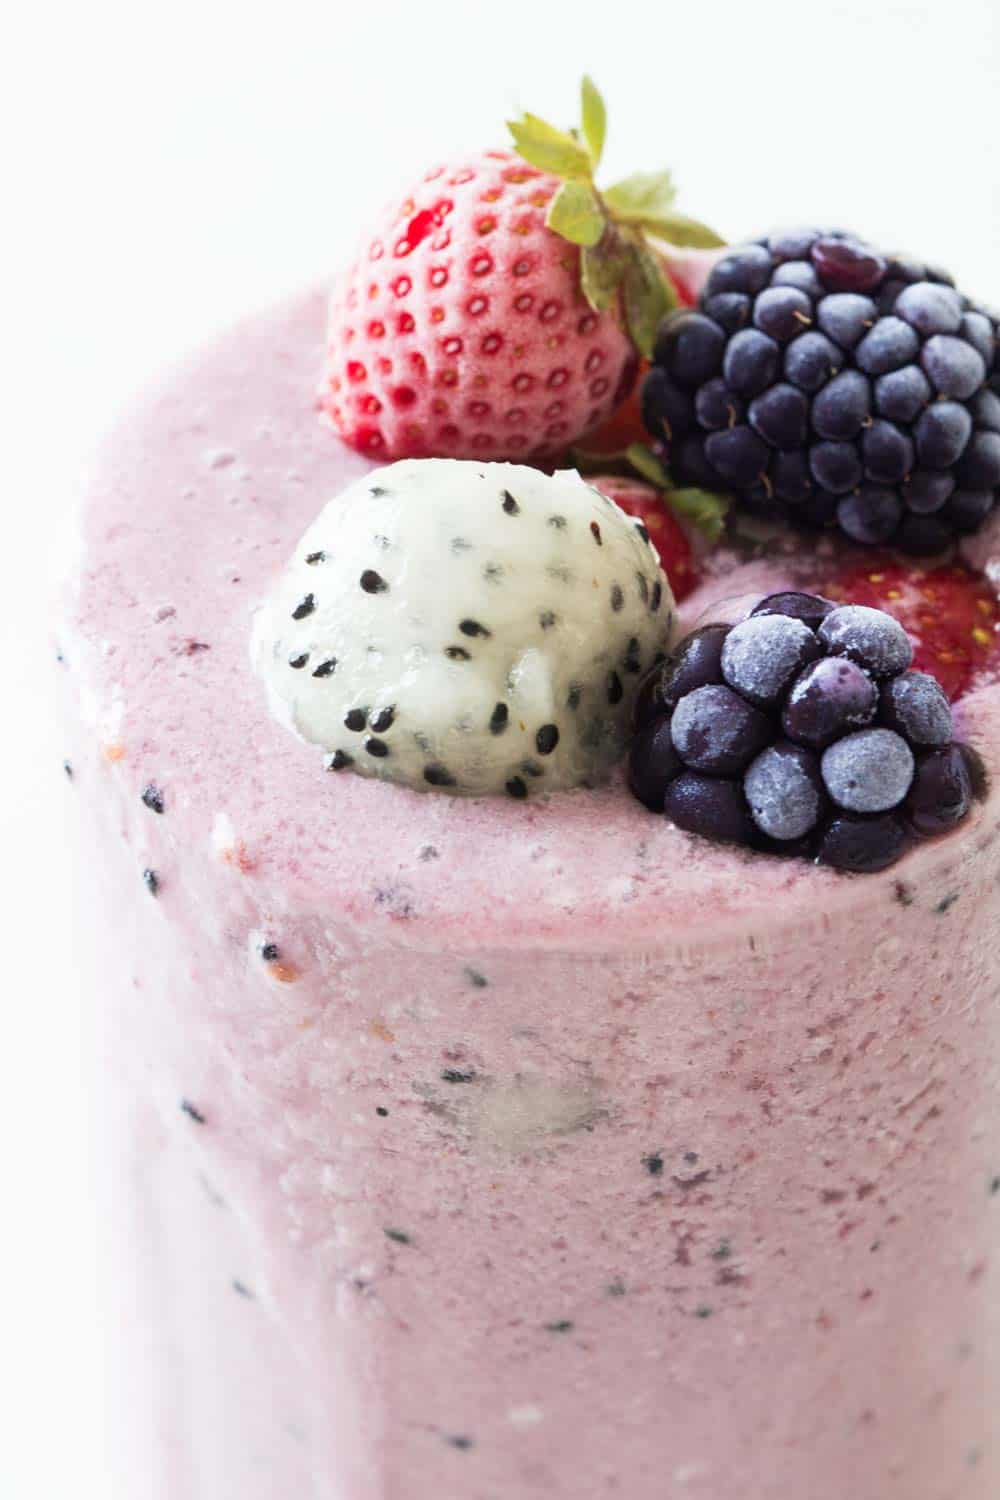 Dragon fruit is a low-calorie fruit, high in fiber and packed with vitamin C. A dragon fruit smoothie is a great way to add dragon fruit into your diet.